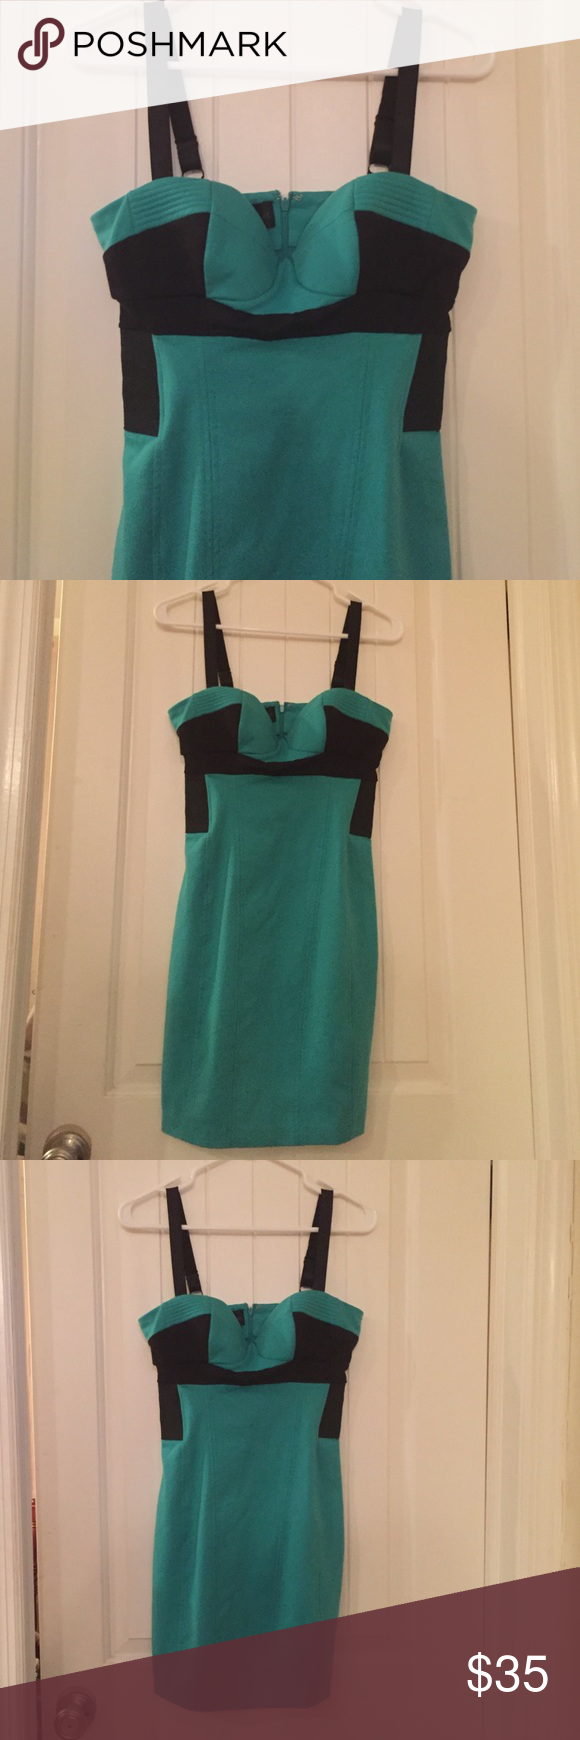 Kardashian dress Black and turquoise body con dress. Great for a girls night out. Very comfortable and you can move. Kardashian Kollection Dresses Mini